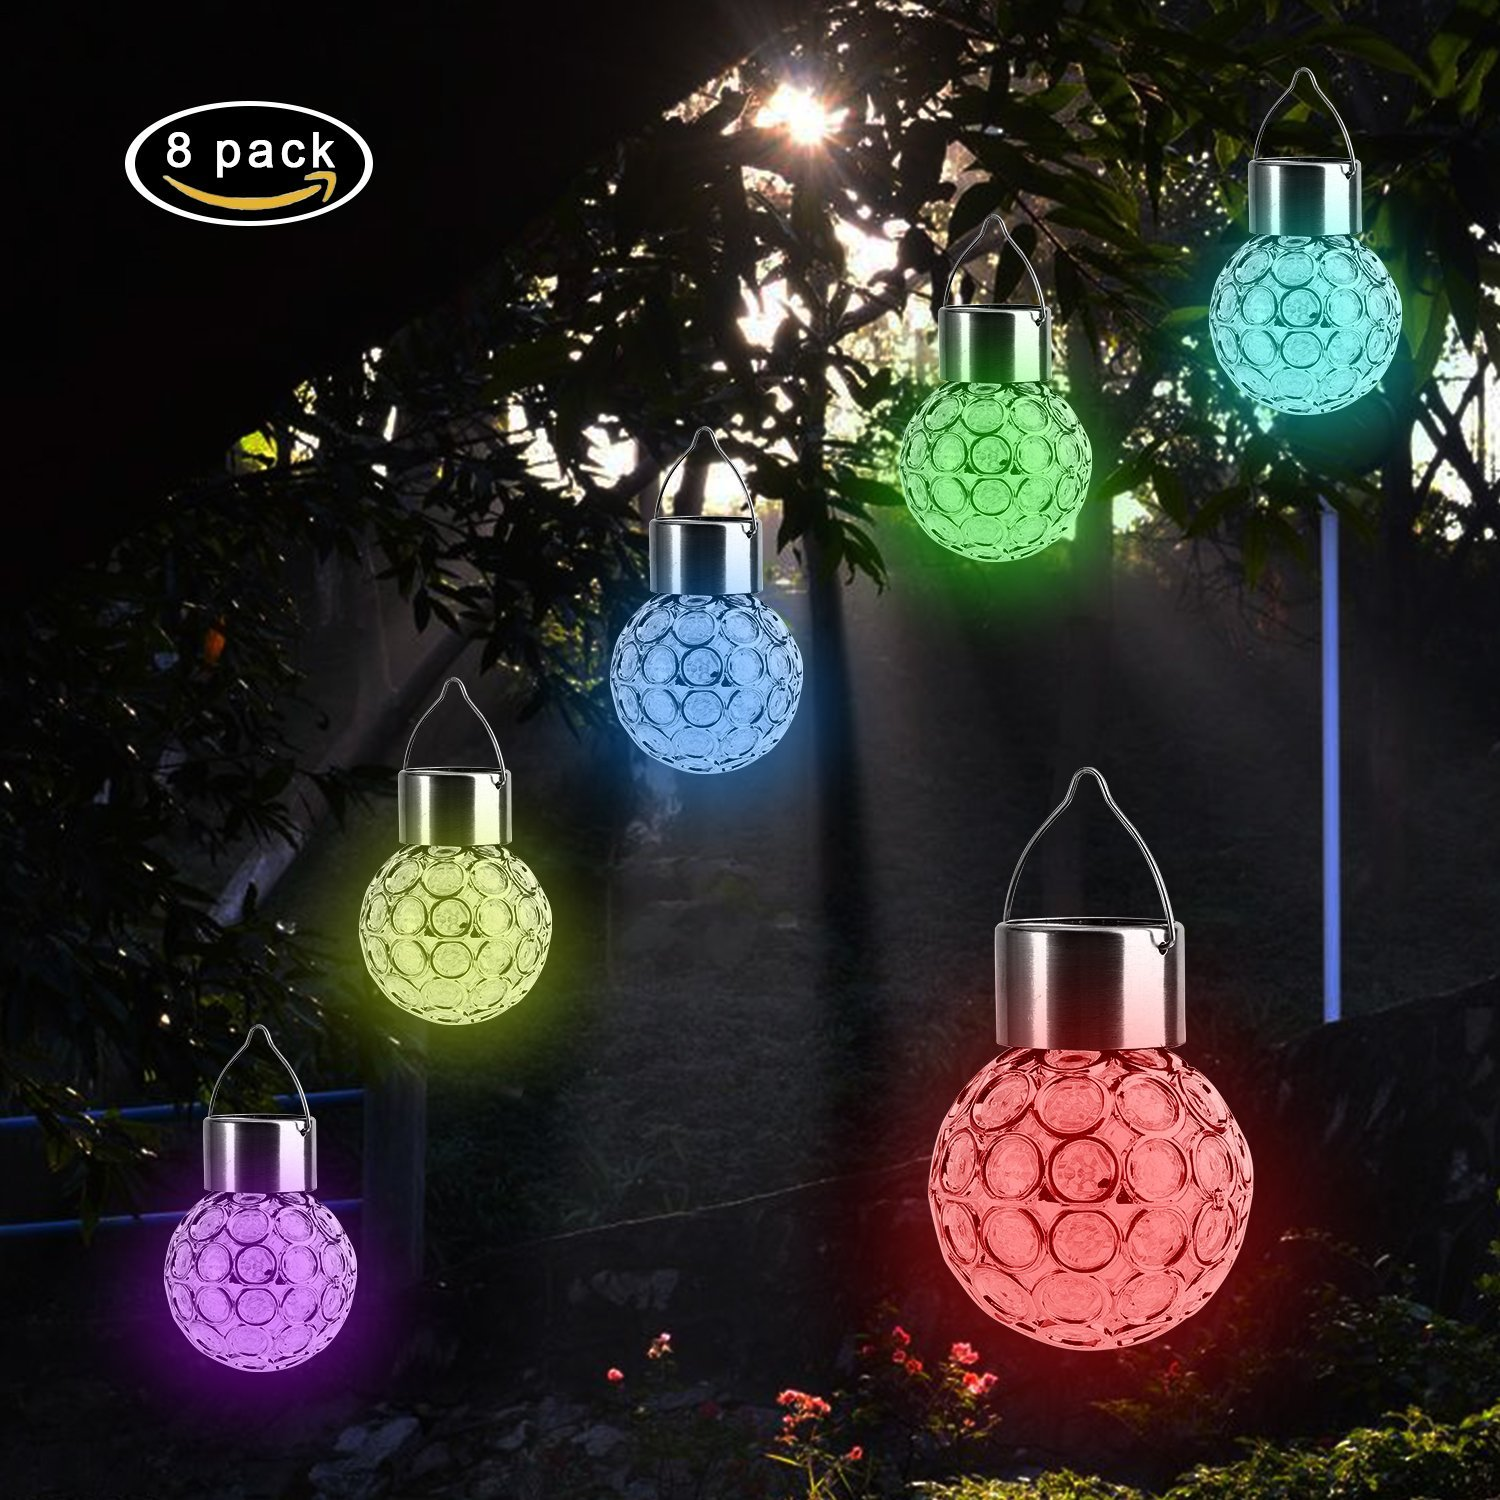 Attrayant 8 Pcs Colorful LED Solar Lights Hanging Ball Lights,Solar Powered Outdoor  Lamp Hanging Decorative